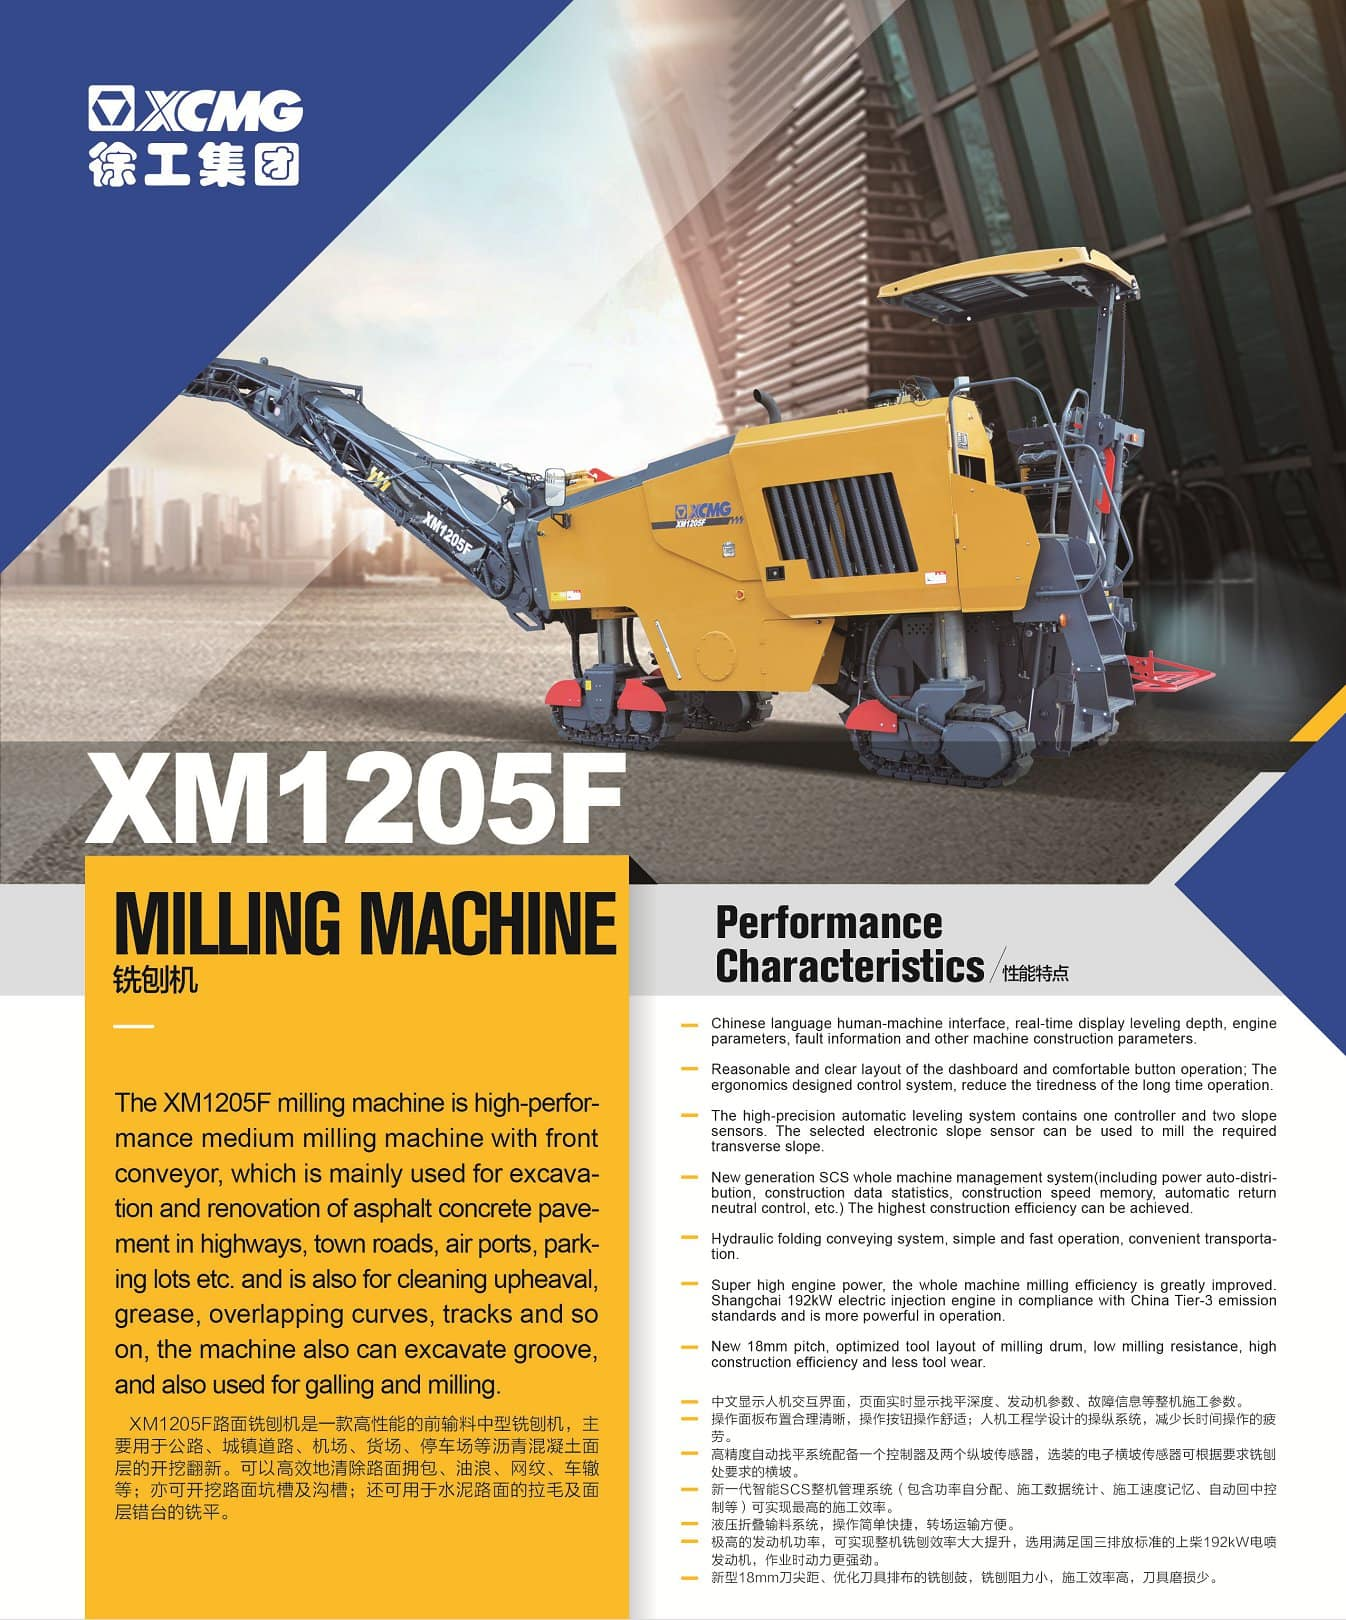 XCMG Official XM1205F Road Milling Machine for sale